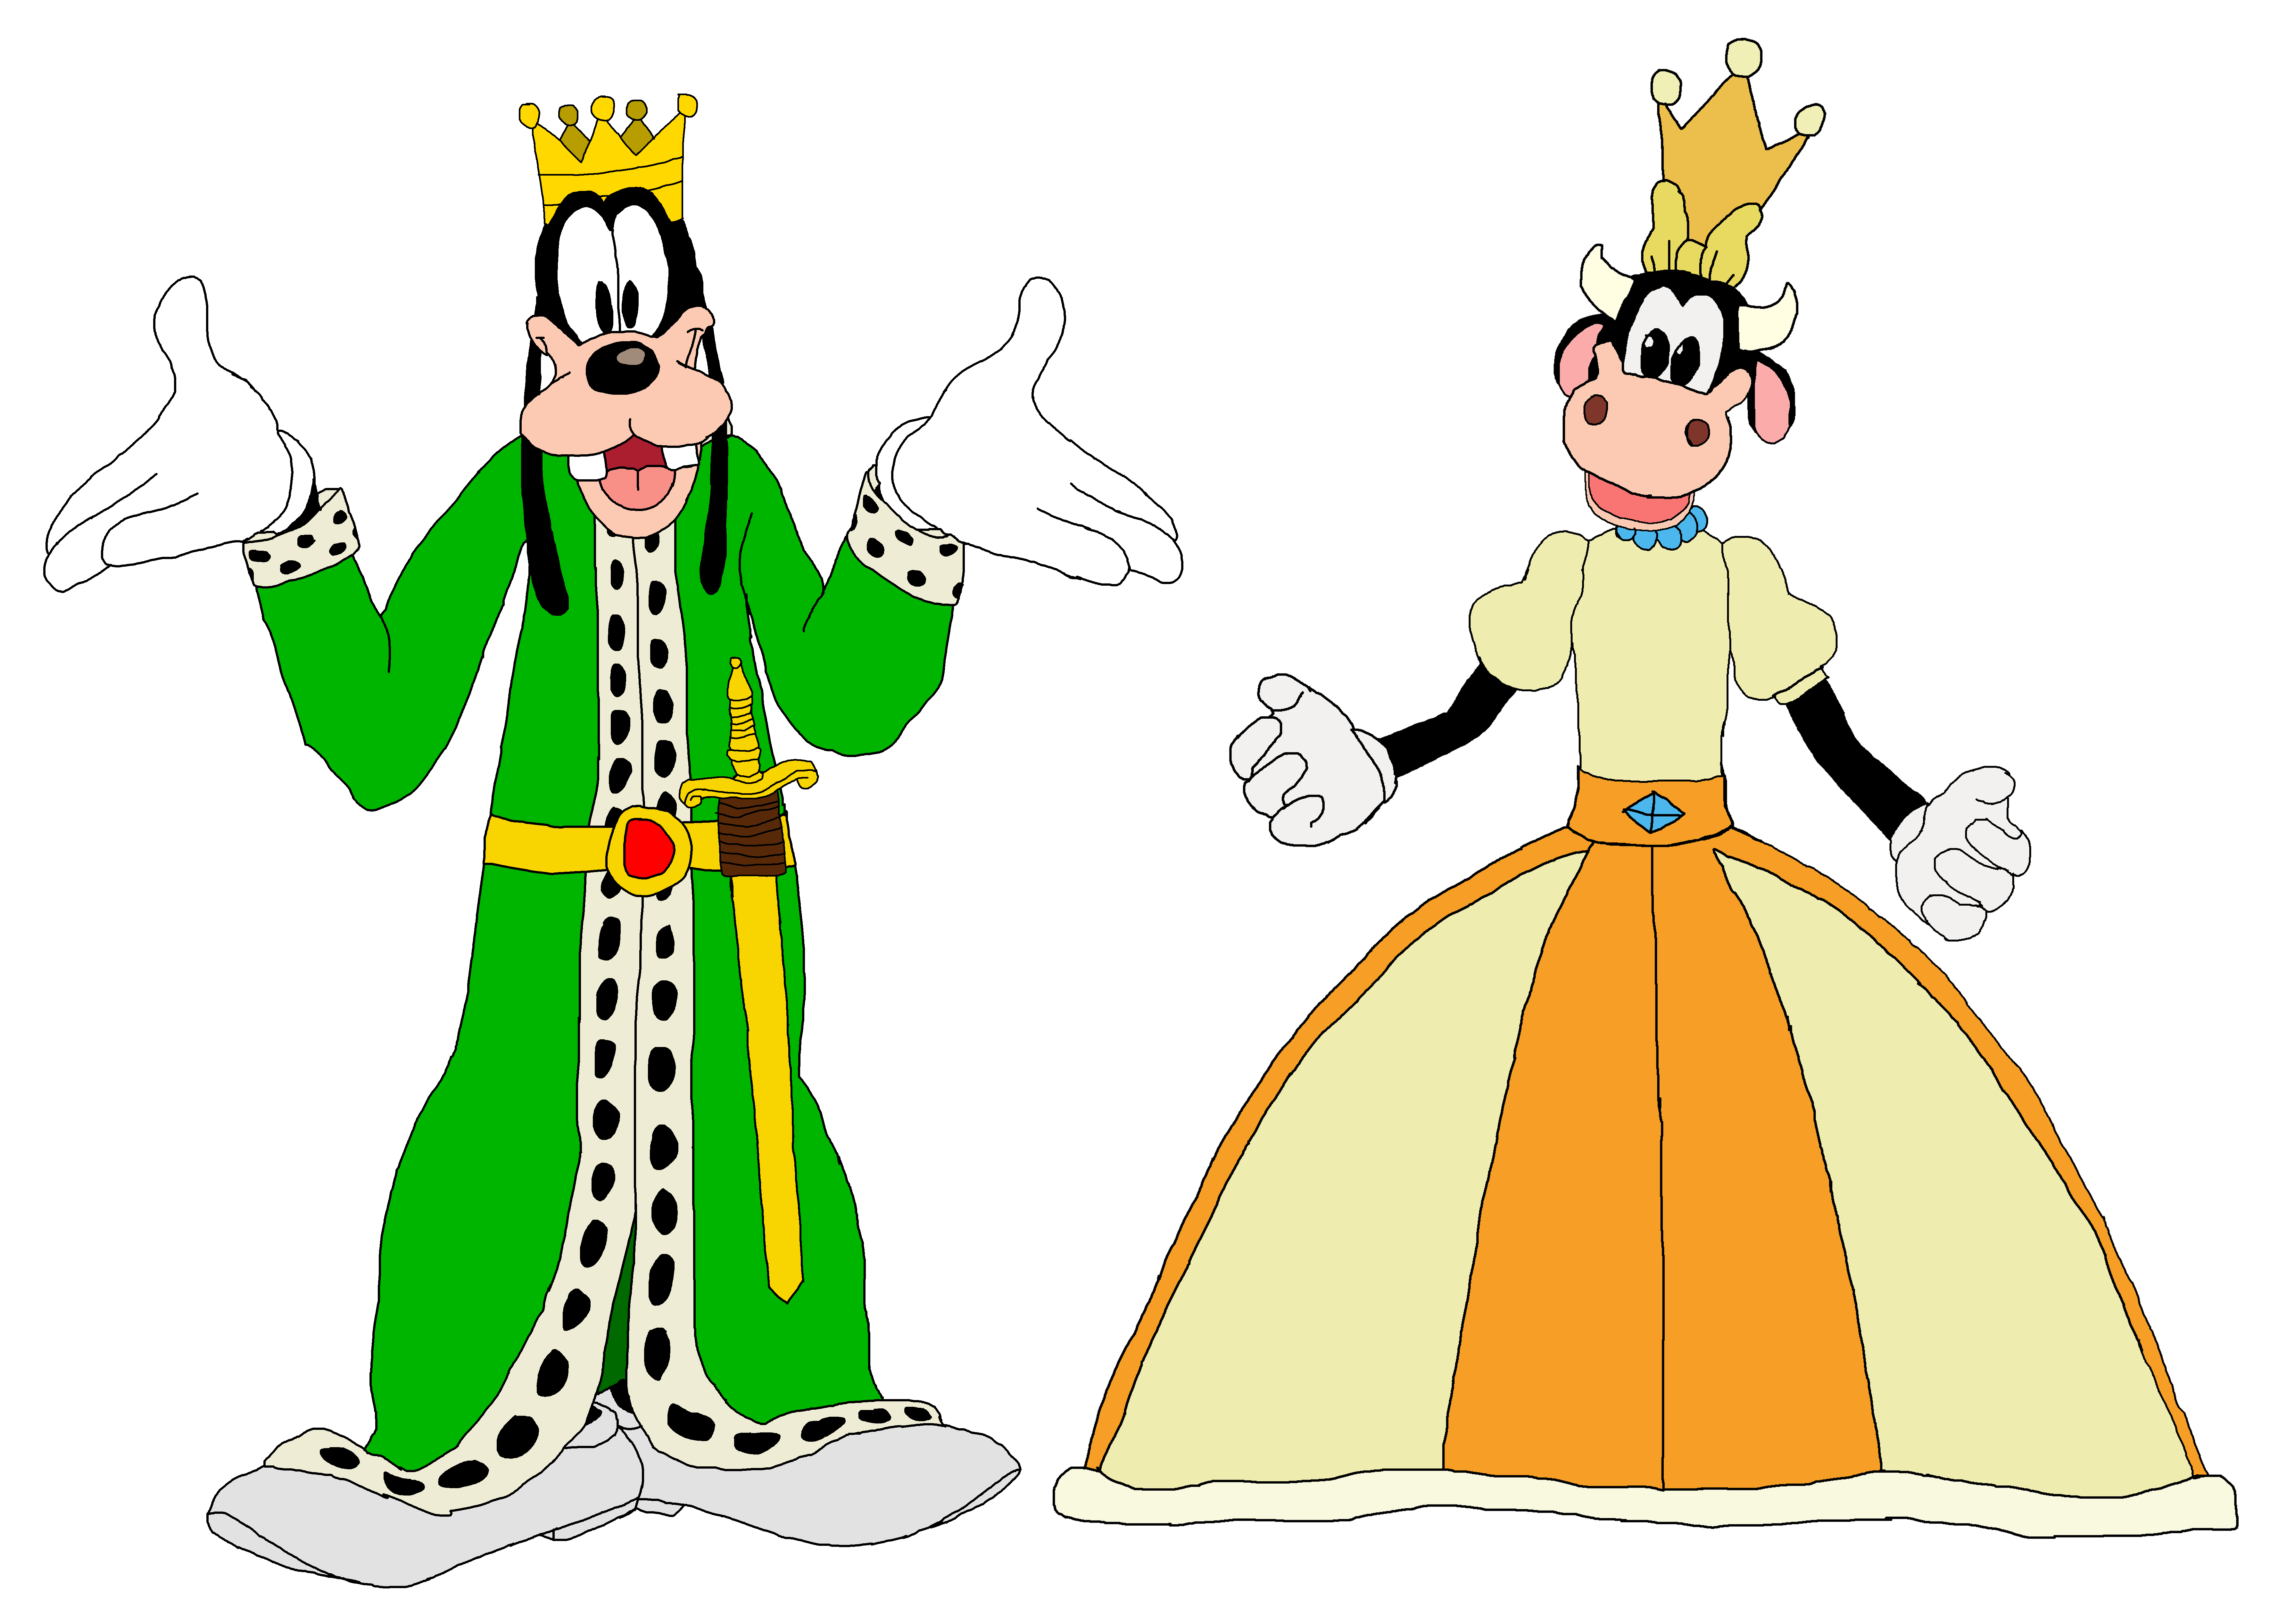 svg free download Mickey mouse images king. Clubhouse clipart clarabelle.